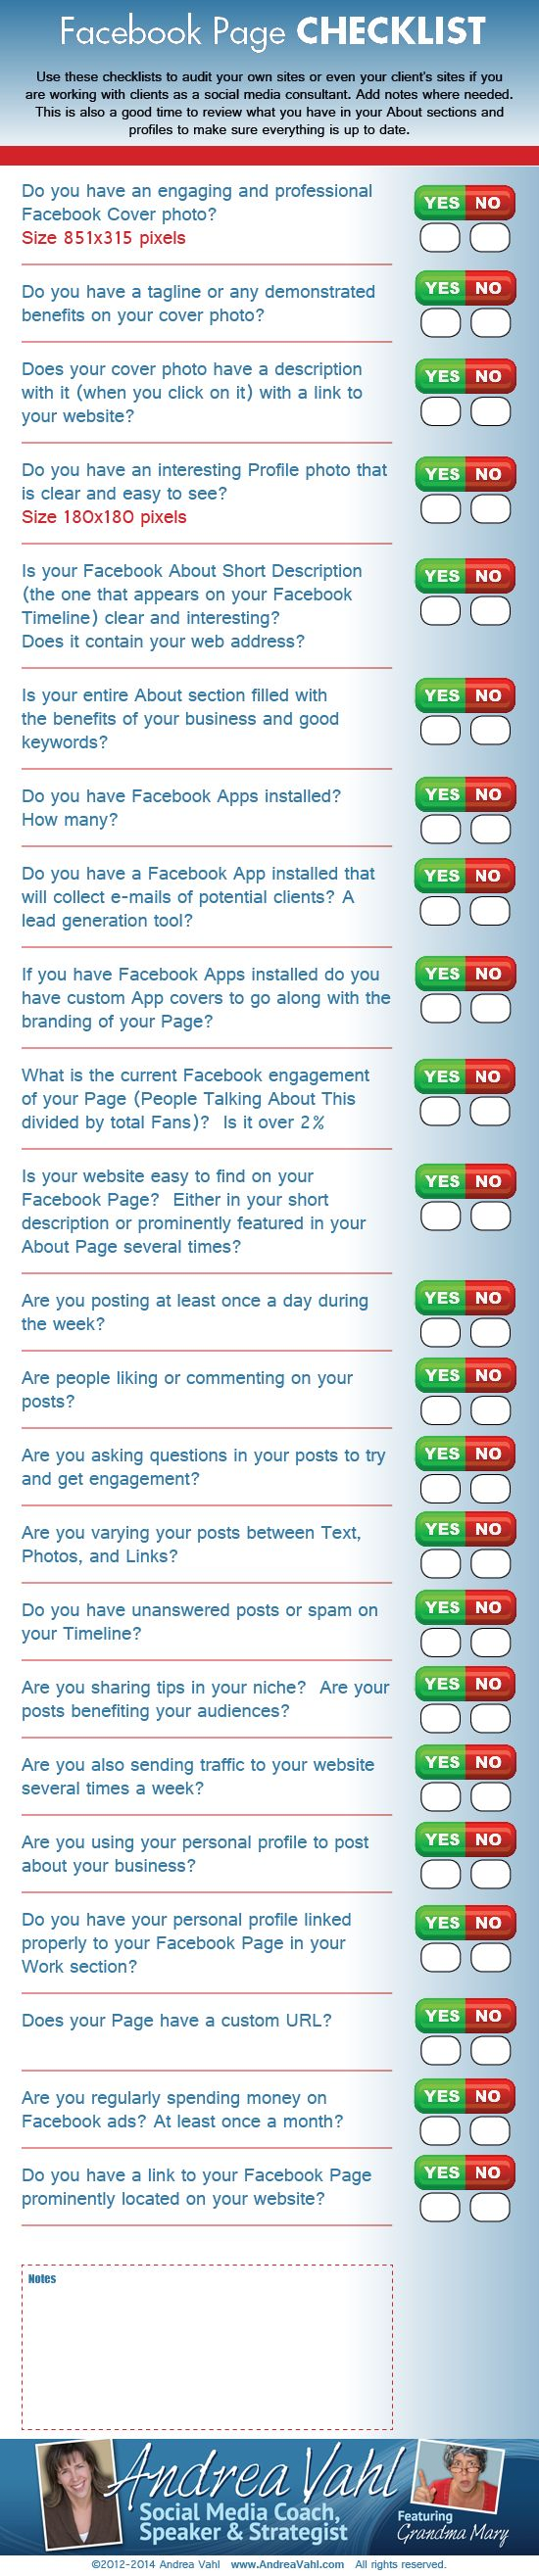 Facebook Page Checklist #Infographic